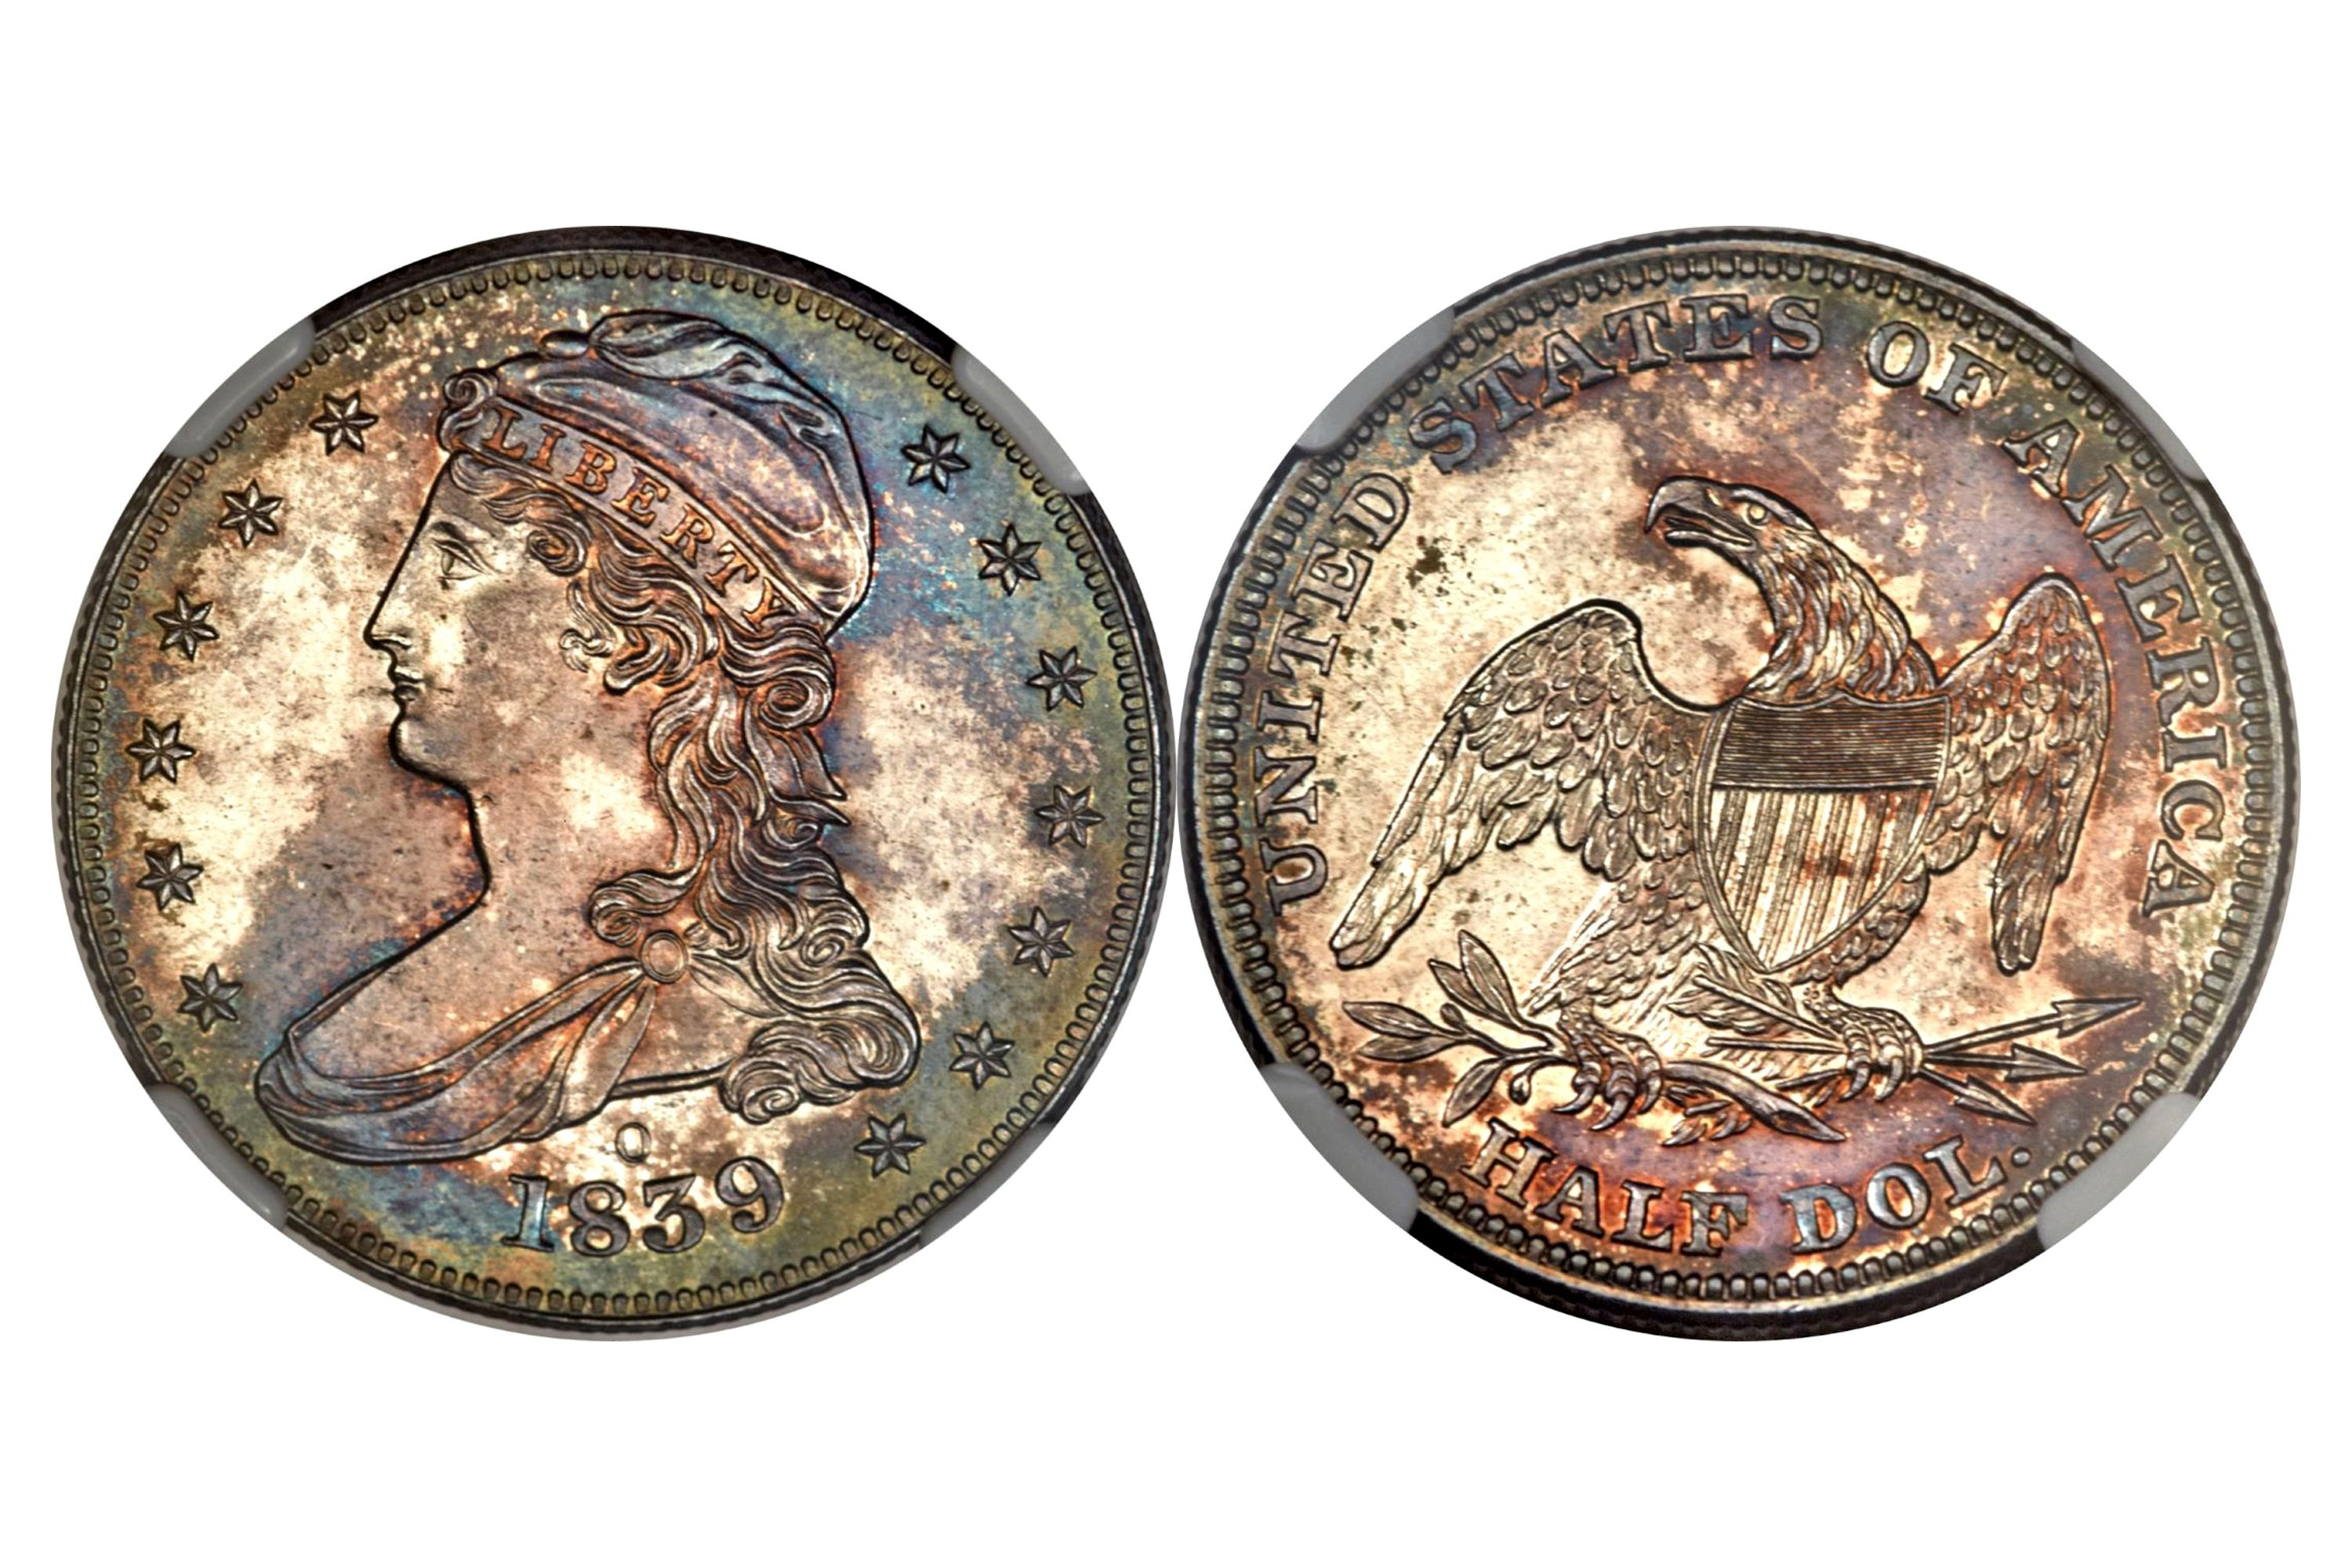 1839-O Proof Capped Bust Half Dollar